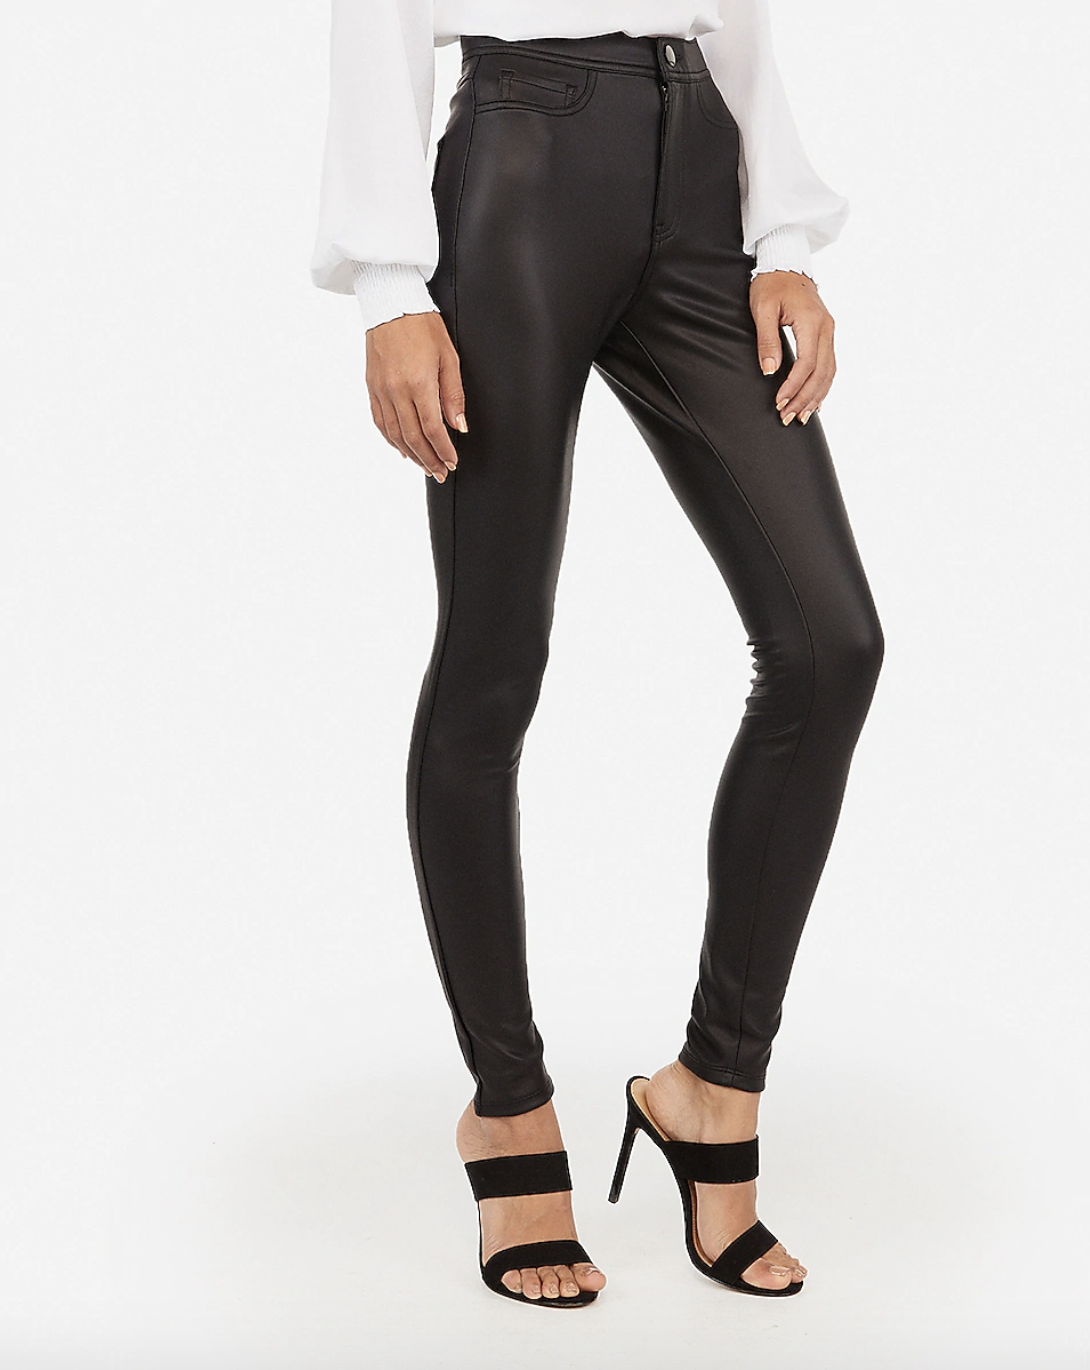 High Waisted (Minus The) Leather Five Pocket Pant from Express